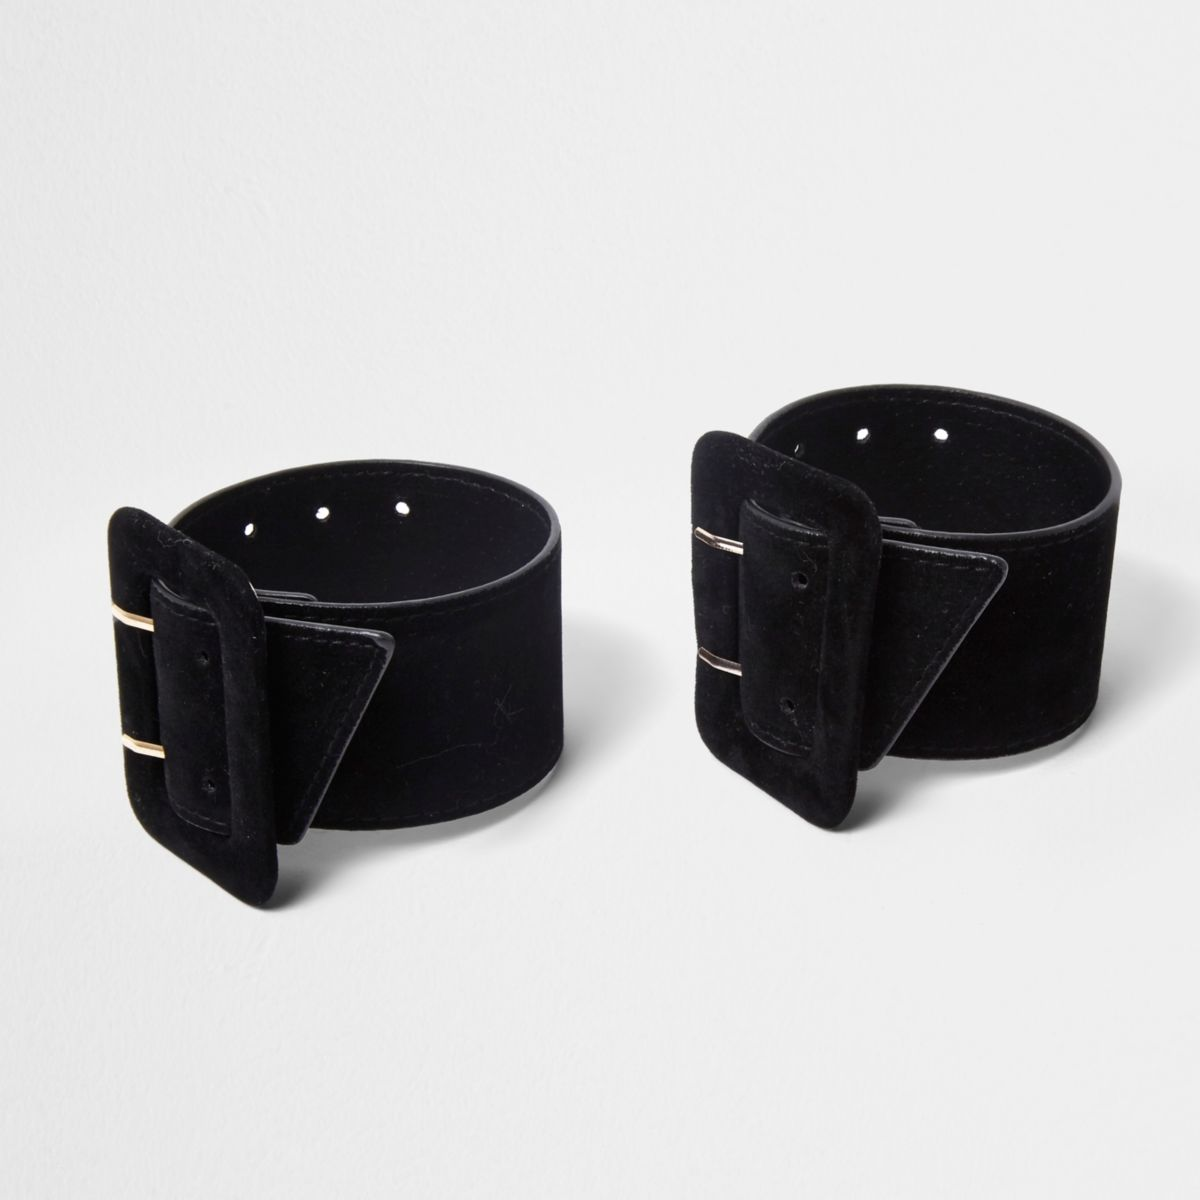 Black buckle ankle straps